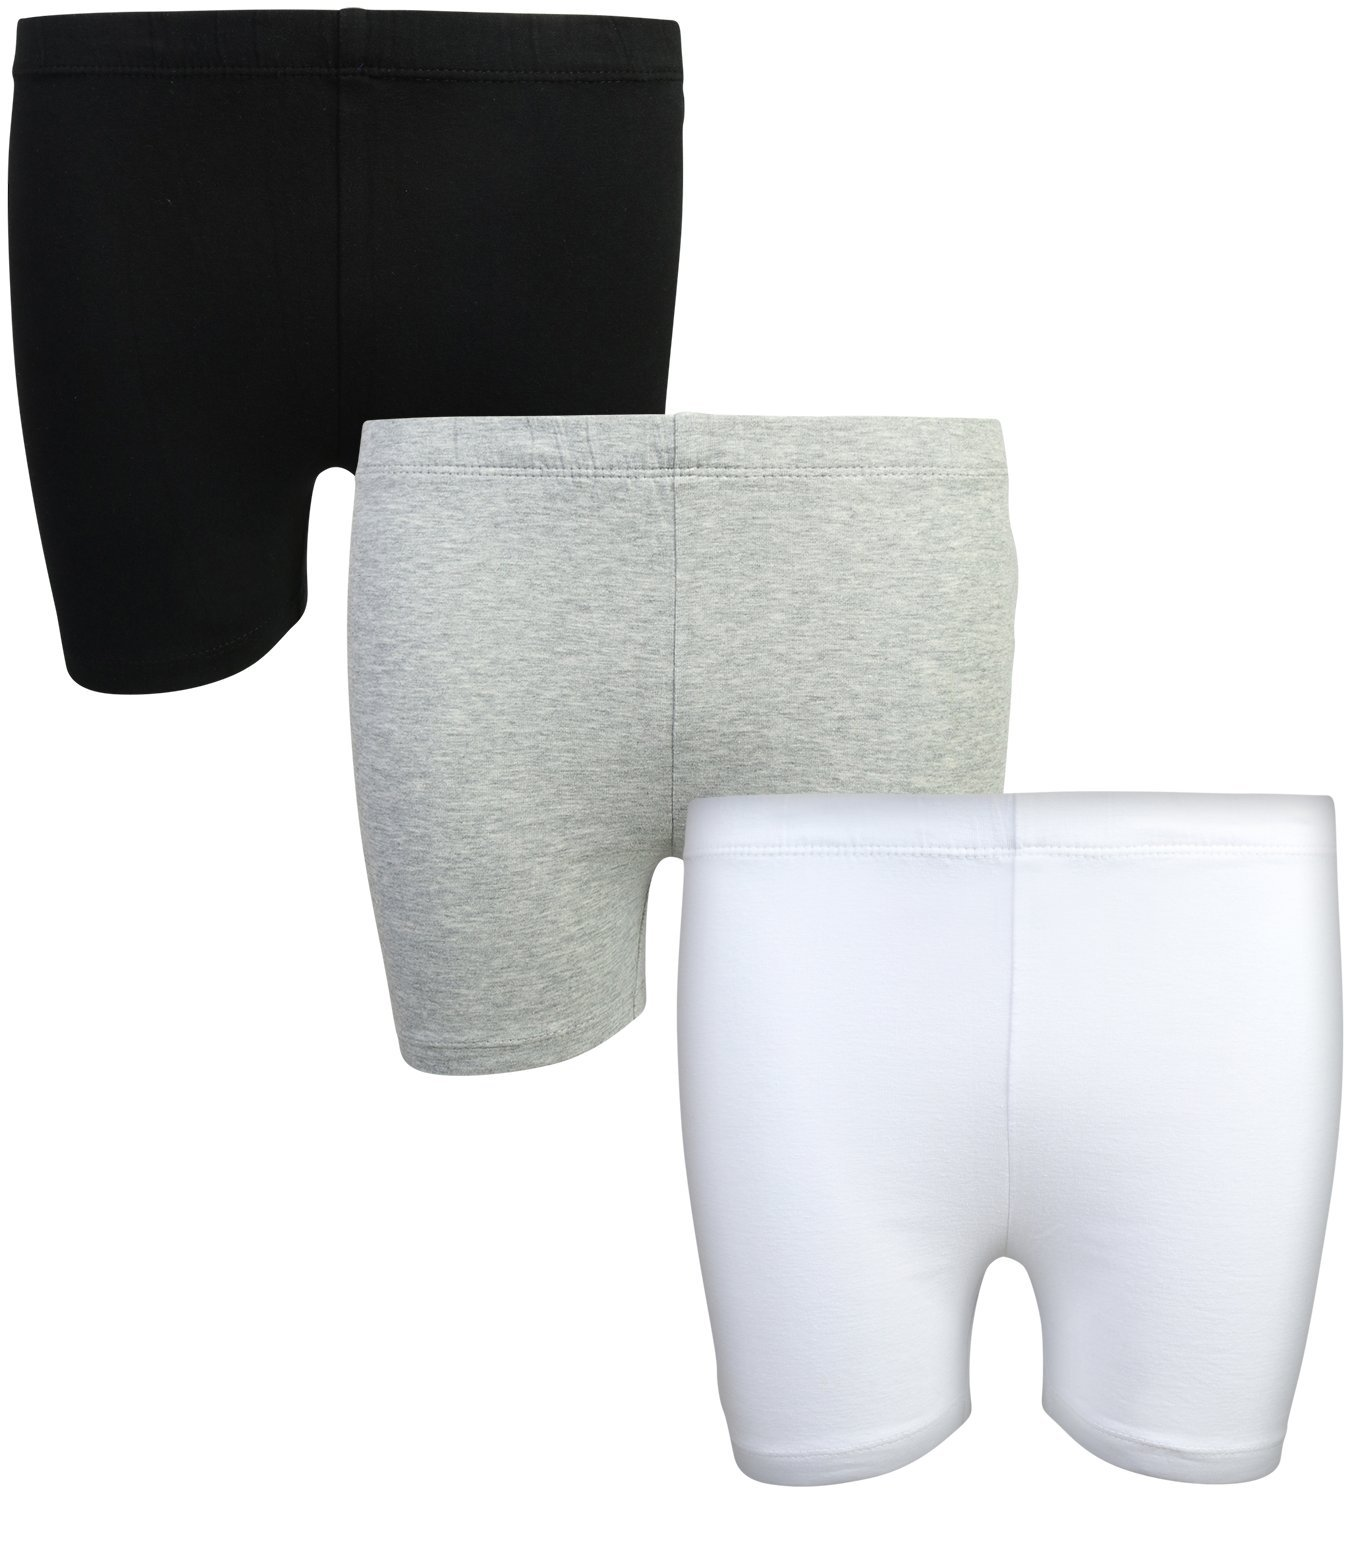 Beverly Hills Polo Club Girls School Uniform Bike Short (3 Pack), Black, Grey & White, 4/5' by Beverly Hills Polo Club